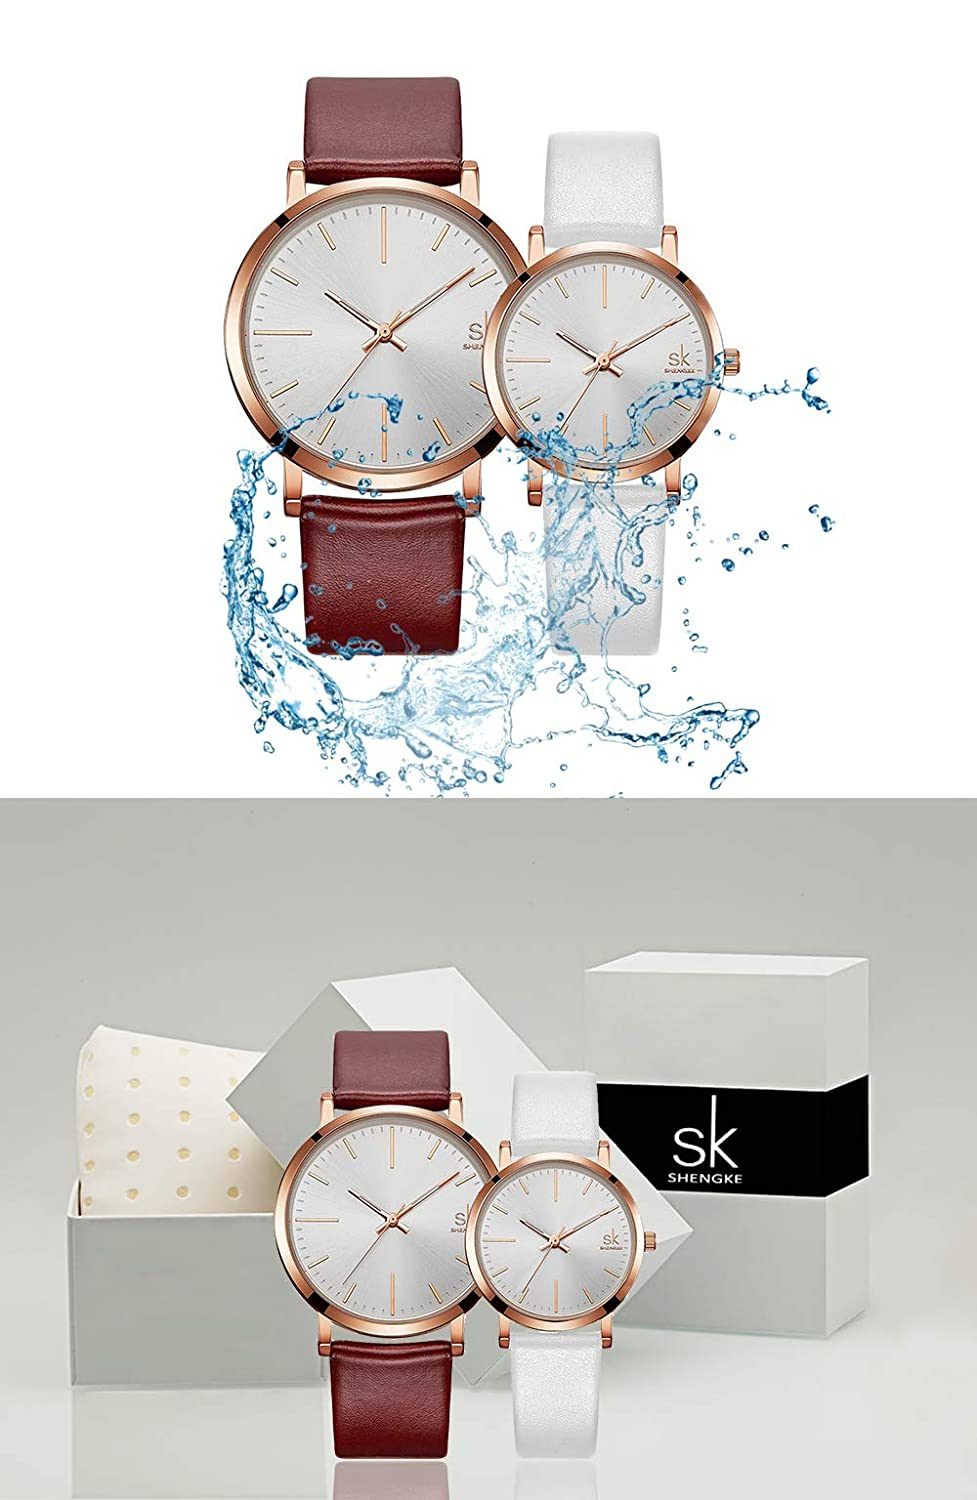 3a1029ab4c5c Amazon.com  SK SHENGKE Couple Watches Anniversary Gifts for Lover Set of 2  Pairs Sweet Gifts for Valentines. (K8039-Brown-White)  Watches